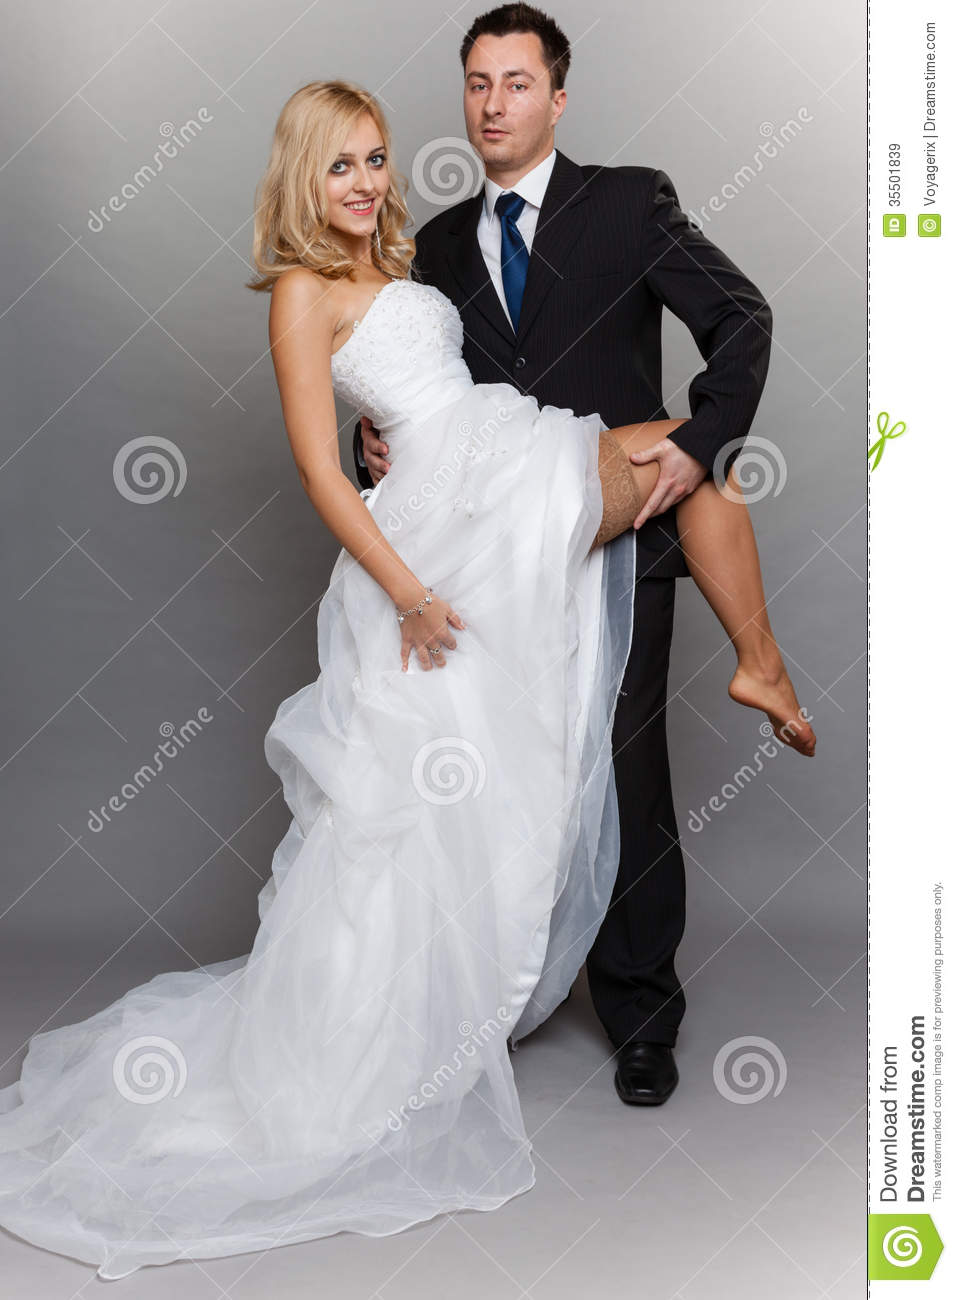 Happy Married Couple Bride Groom On Gray Background Stock Image - Image Of Pretty -6740